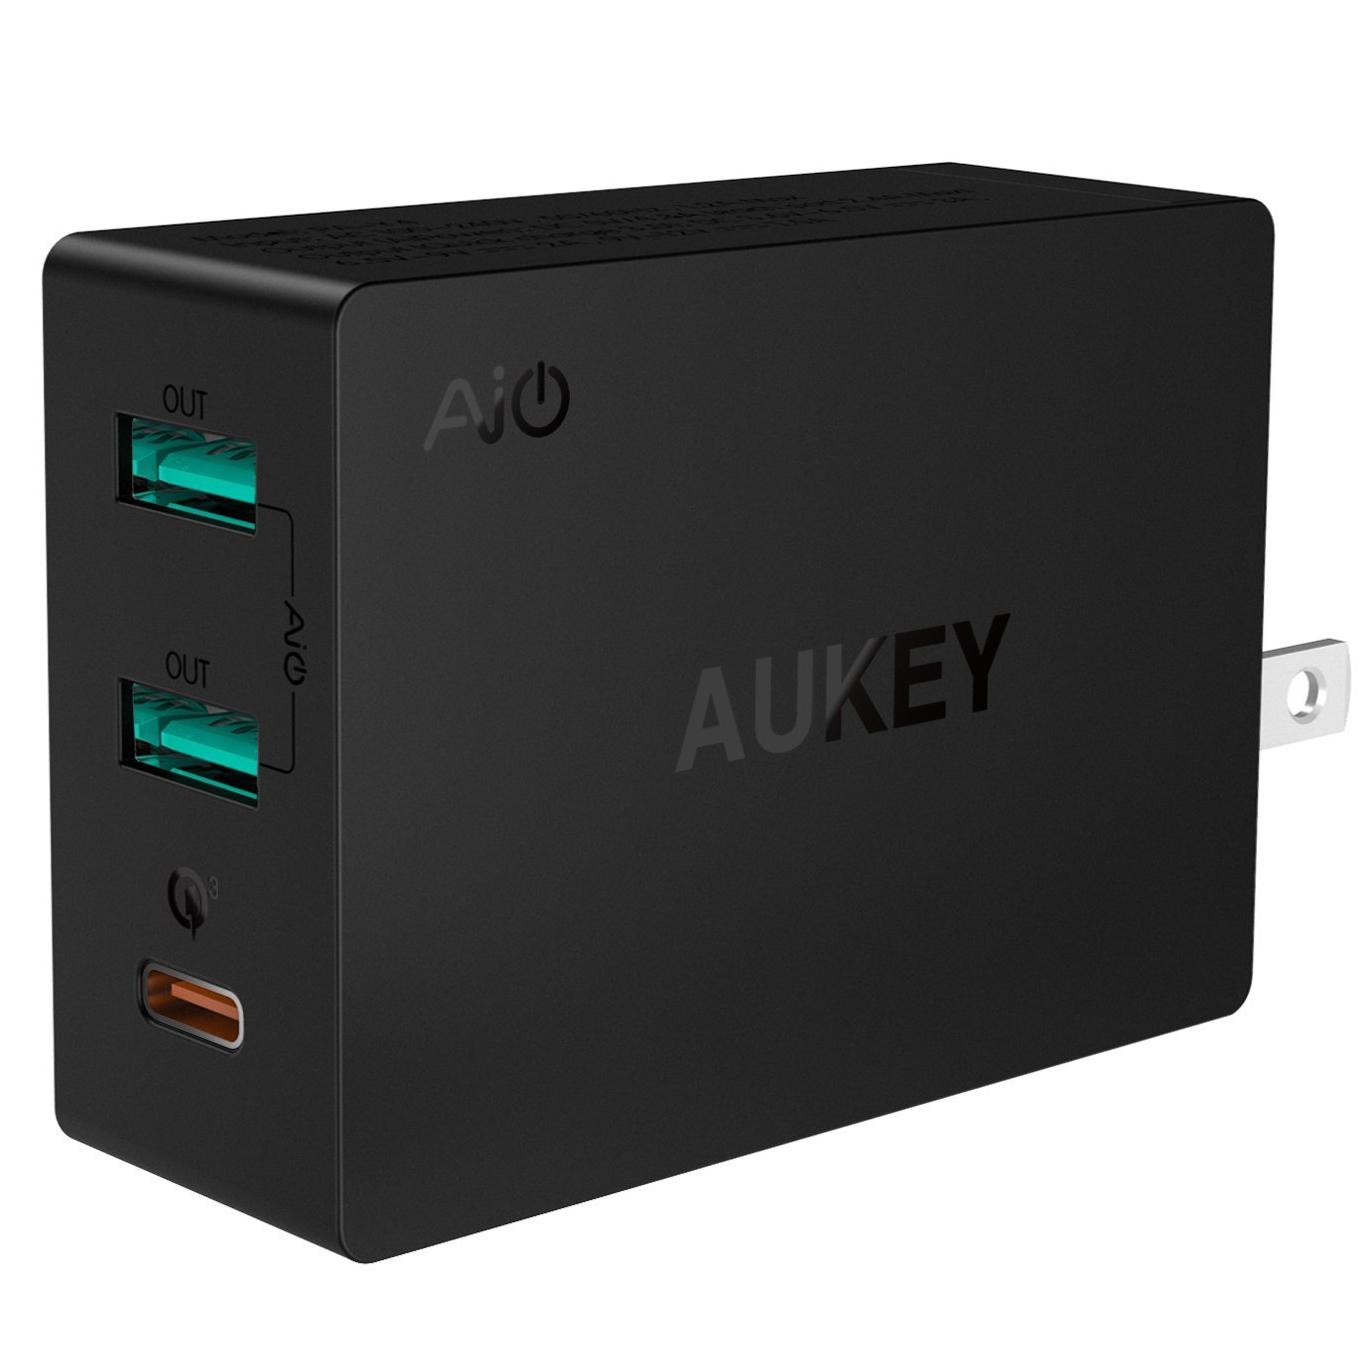 Aukey Quick Charge 3.0 USB Wall Charger